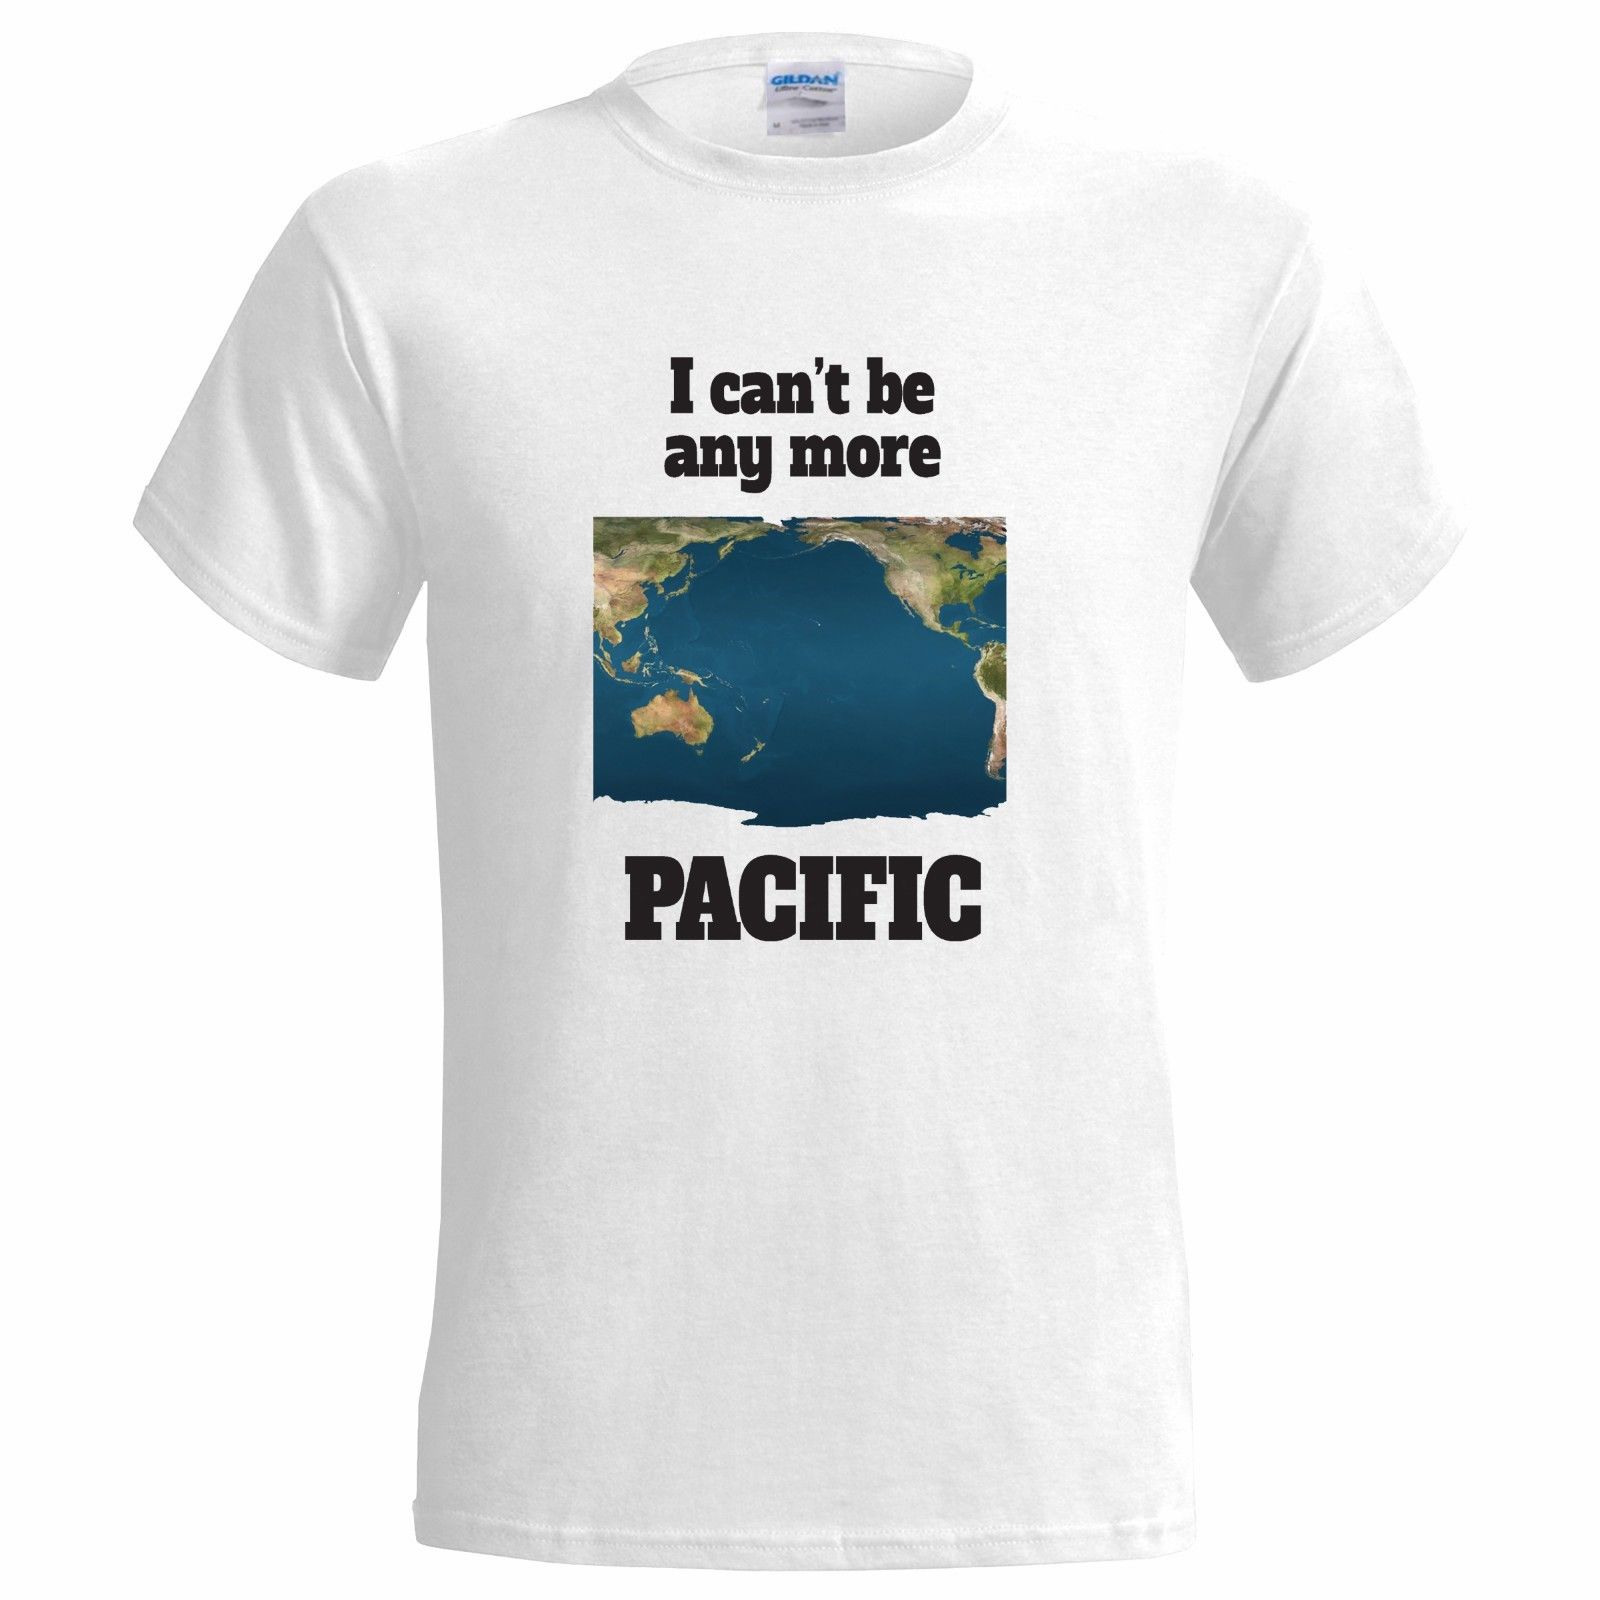 I CANT BE MORE PACIFIC FUNNY JOKE PUN SPECIFIC BAD GRAMMAR WRONG Cool Funny T-Shirt Men High Quality Tees